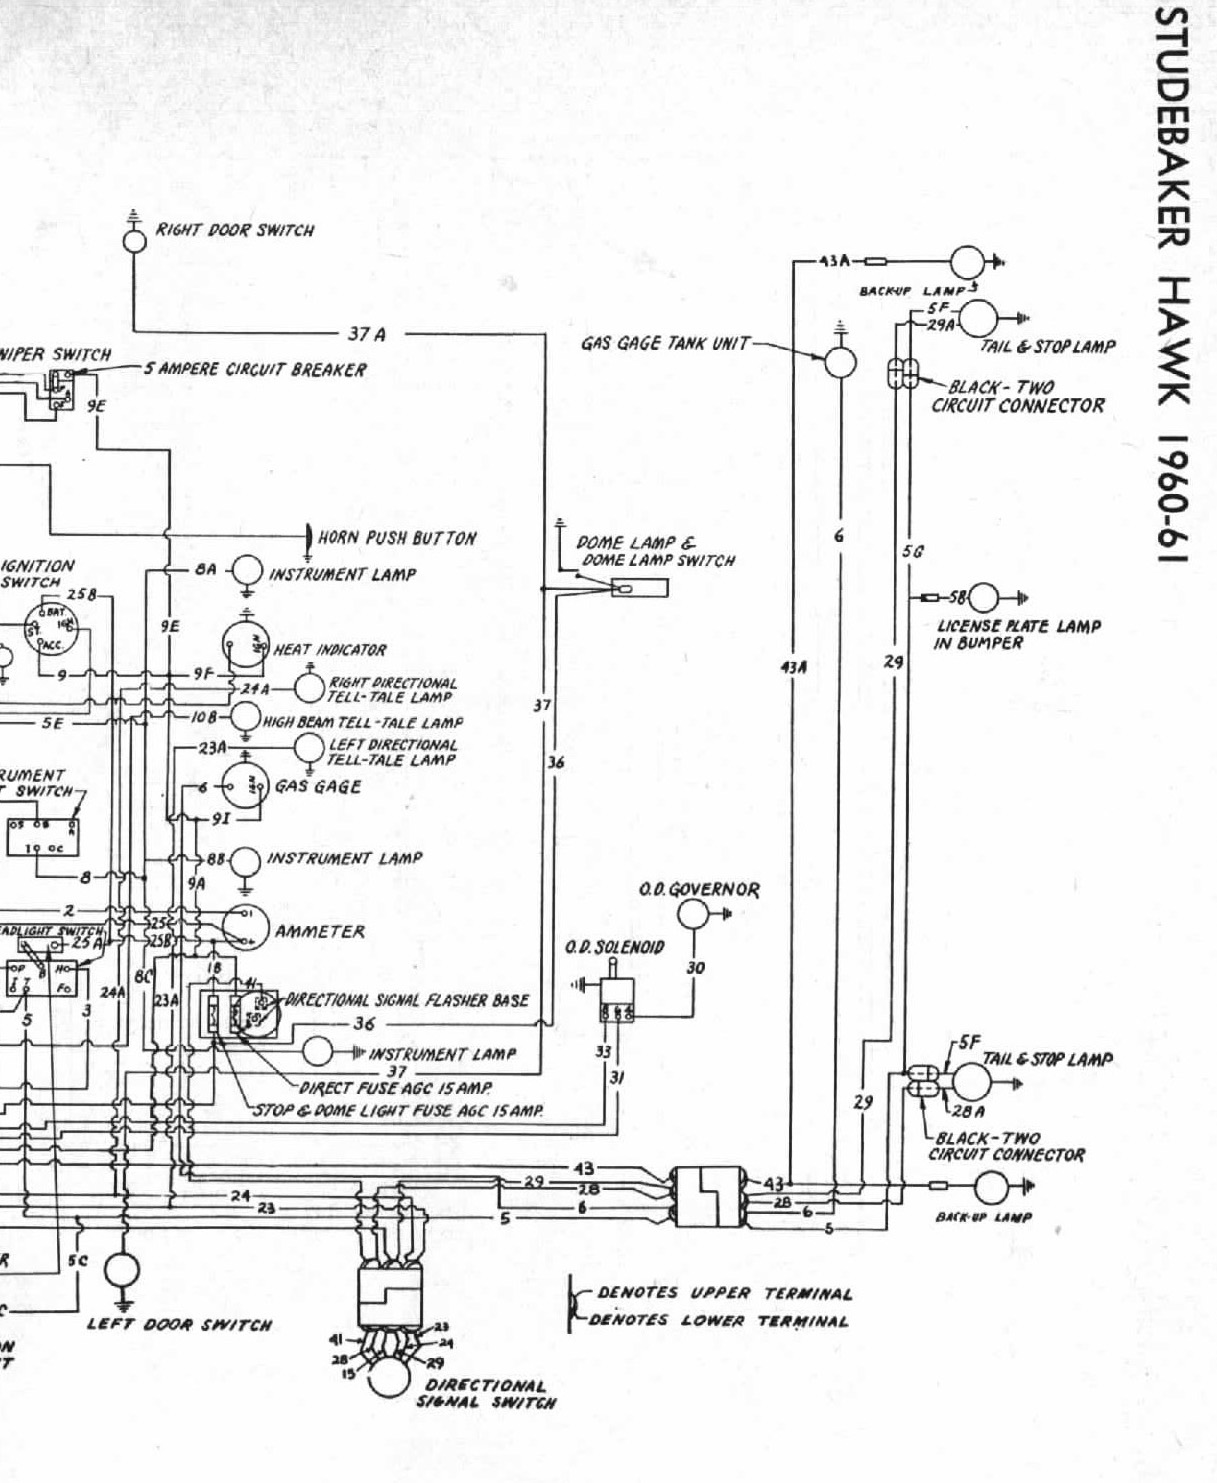 1964 Avanti Wiring Diagram The Portal And Forum Of Bob Johnstone S Studebaker Page Rh Info Org Bonds Movie 1987